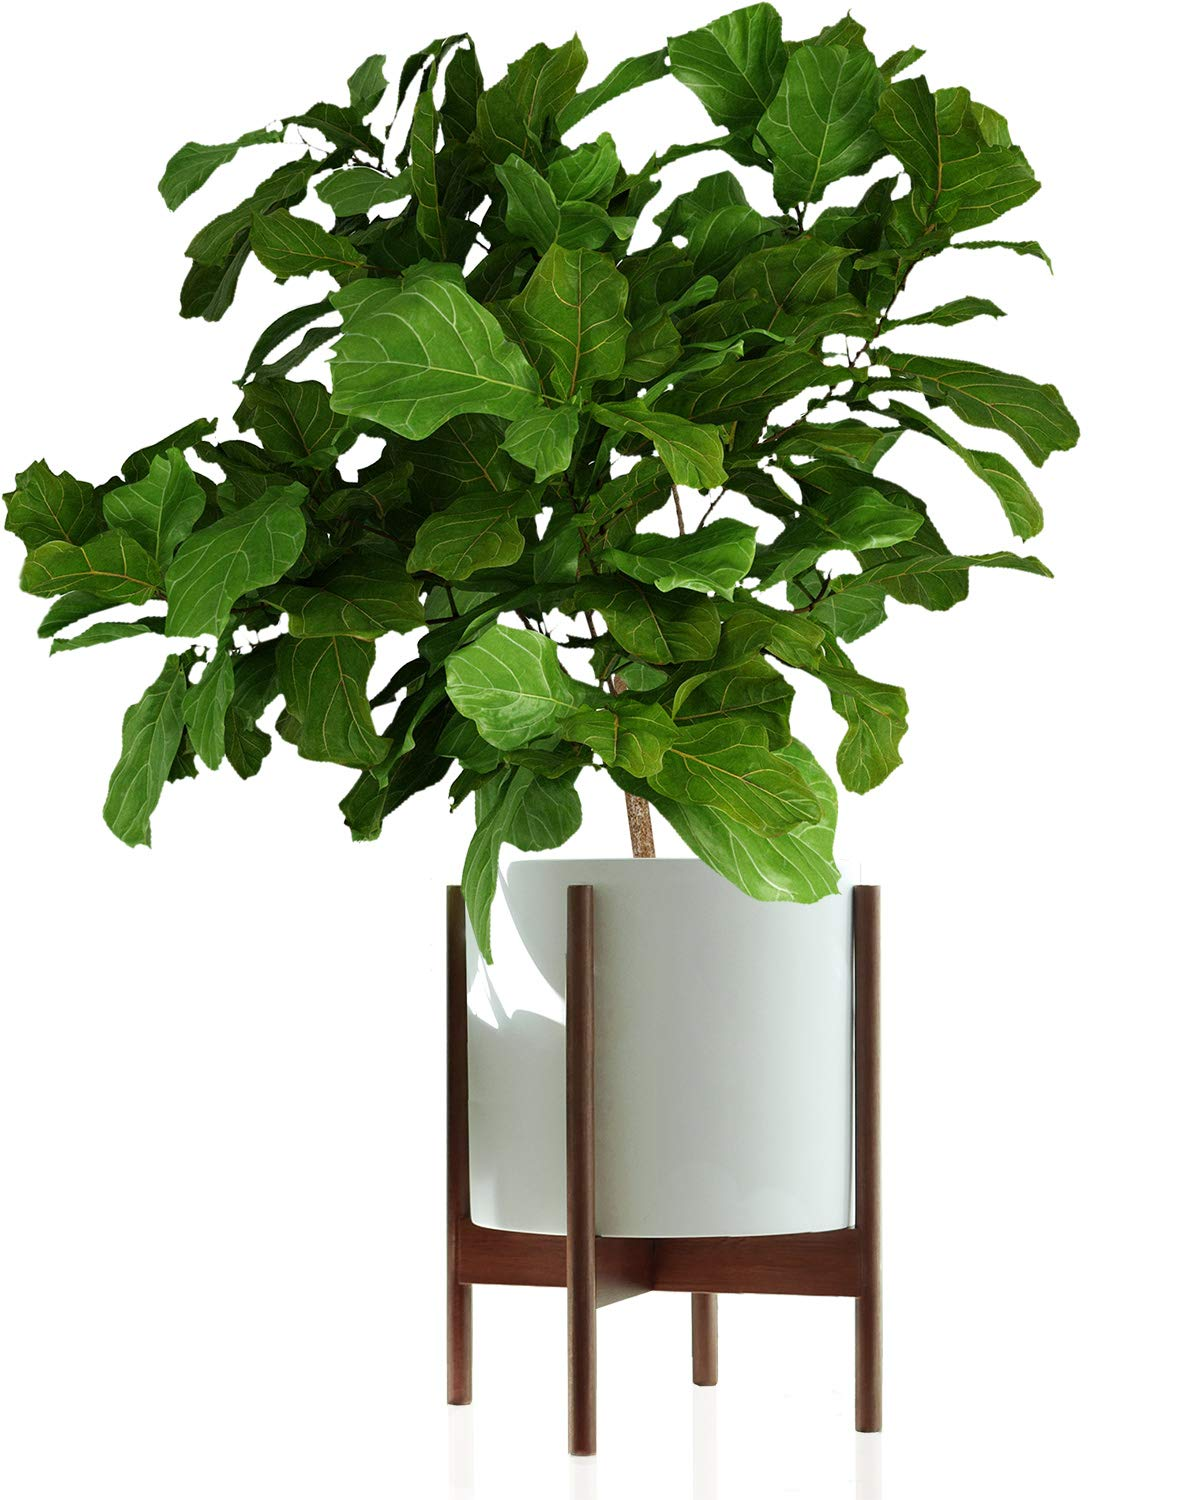 """Fox & Fern Mid-Century Modern Plant Stand - EXCLUDING White Ceramic Planter Pot (Fits 12"""" Pot, Acacia Wood)"""